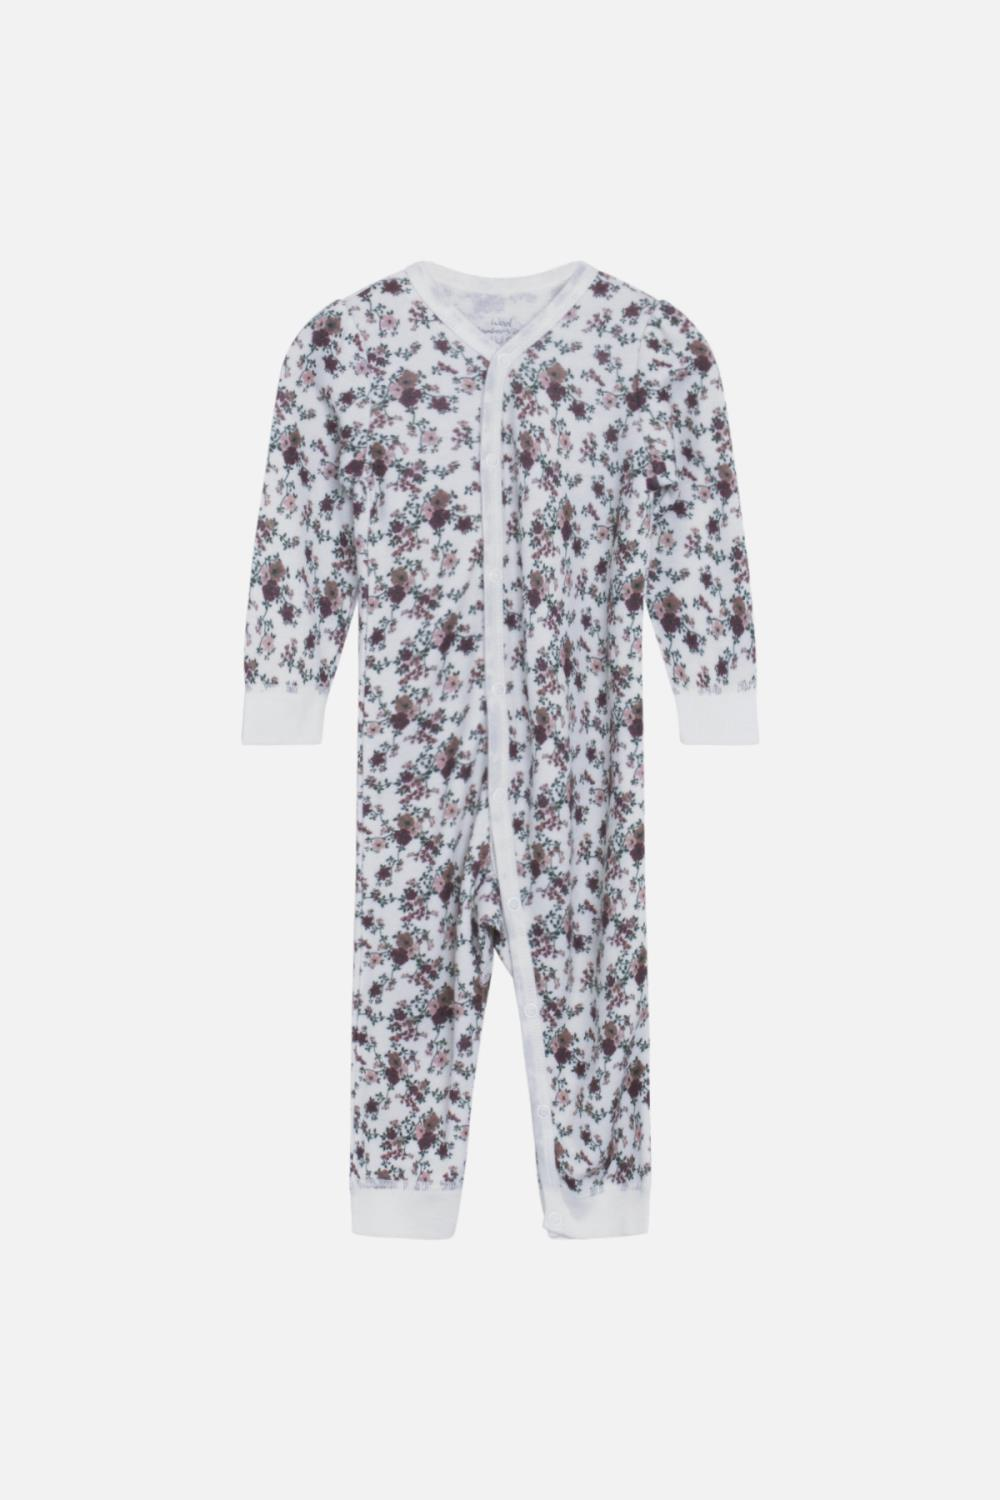 Hust and Claire - Heldress Malai ull/bambus, offwhite